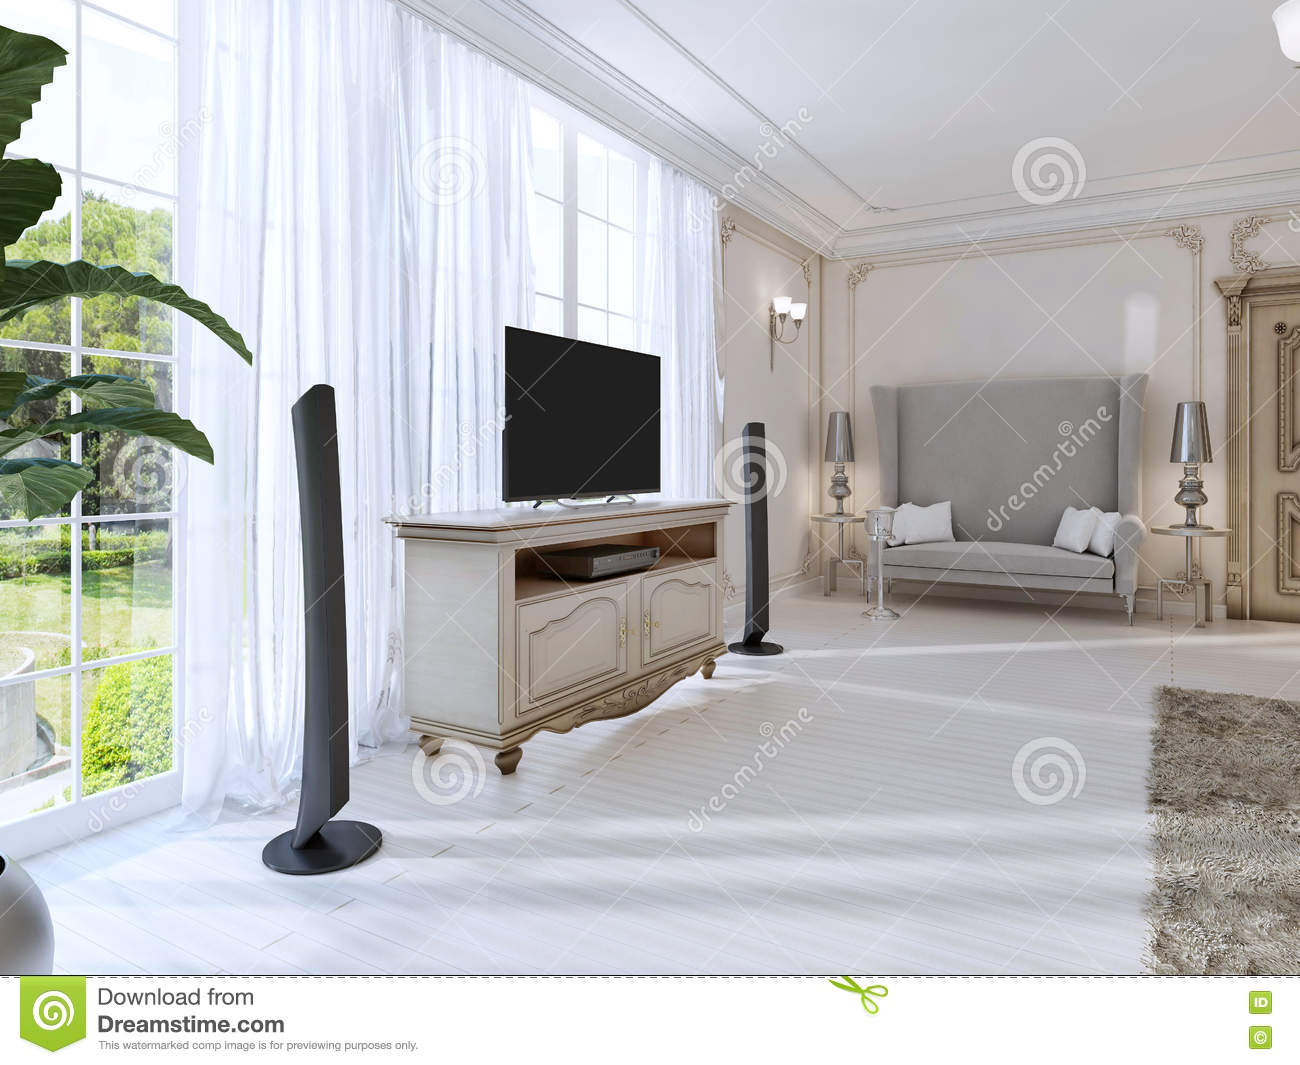 Luxurious Bedroom With A Large Sofa And TV Unit The Large